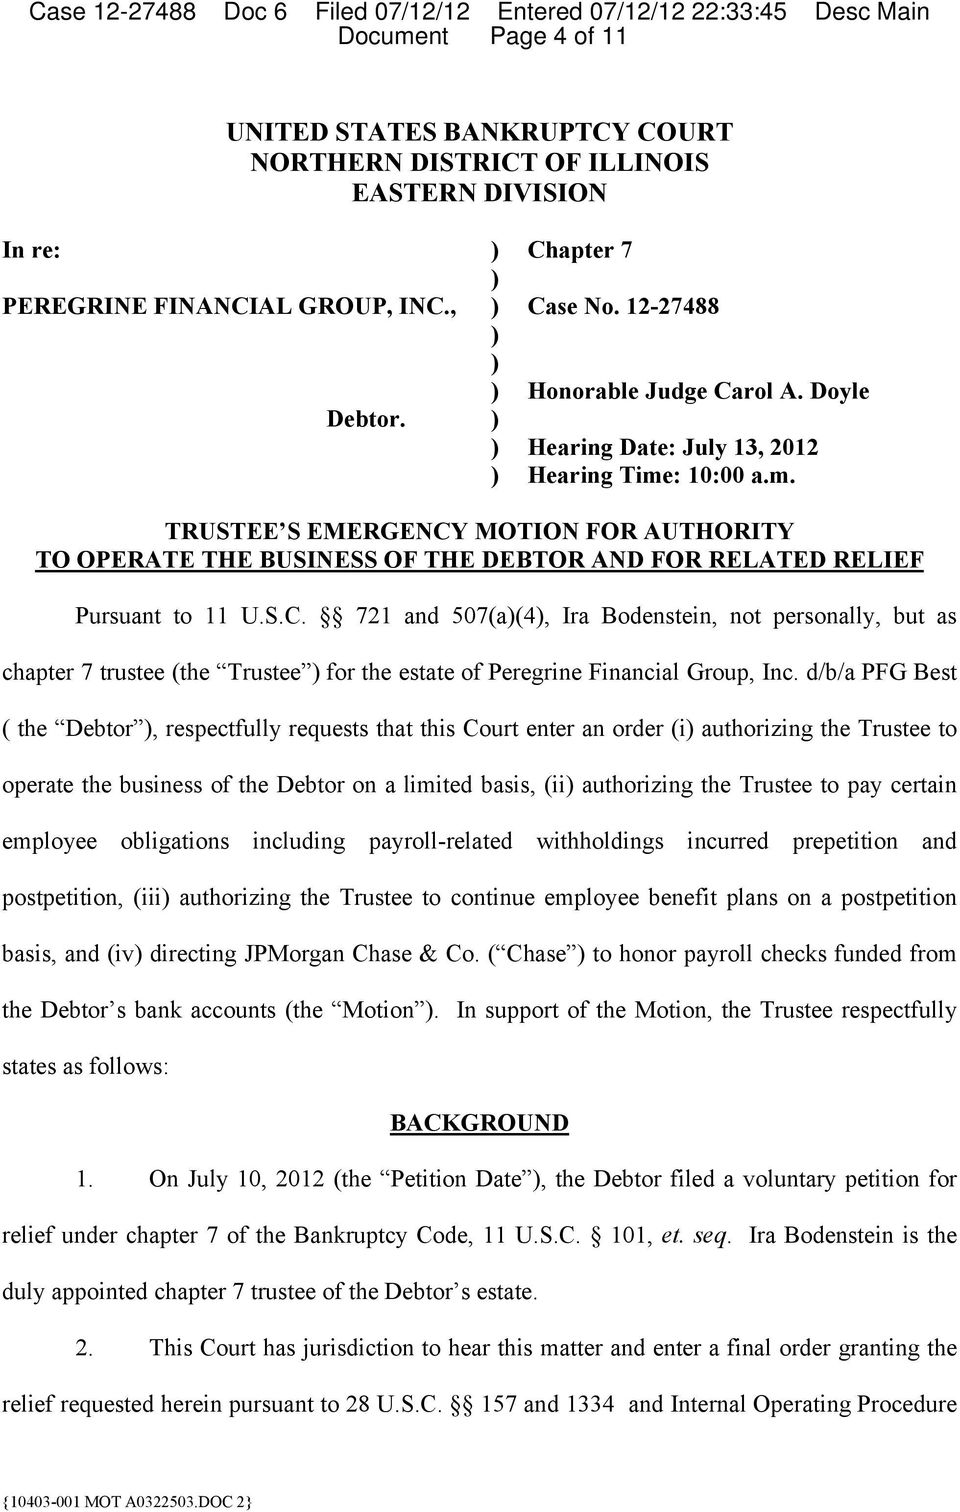 : 10:00 a.m. TRUSTEE S EMERGENCY MOTION FOR AUTHORITY TO OPERATE THE BUSINESS OF THE DEBTOR AND FOR RELATED RELIEF Pursuant to 11 U.S.C. 721 and 507(a)(4), Ira Bodenstein, not personally, but as chapter 7 trustee (the Trustee ) for the estate of Peregrine Financial Group, Inc.